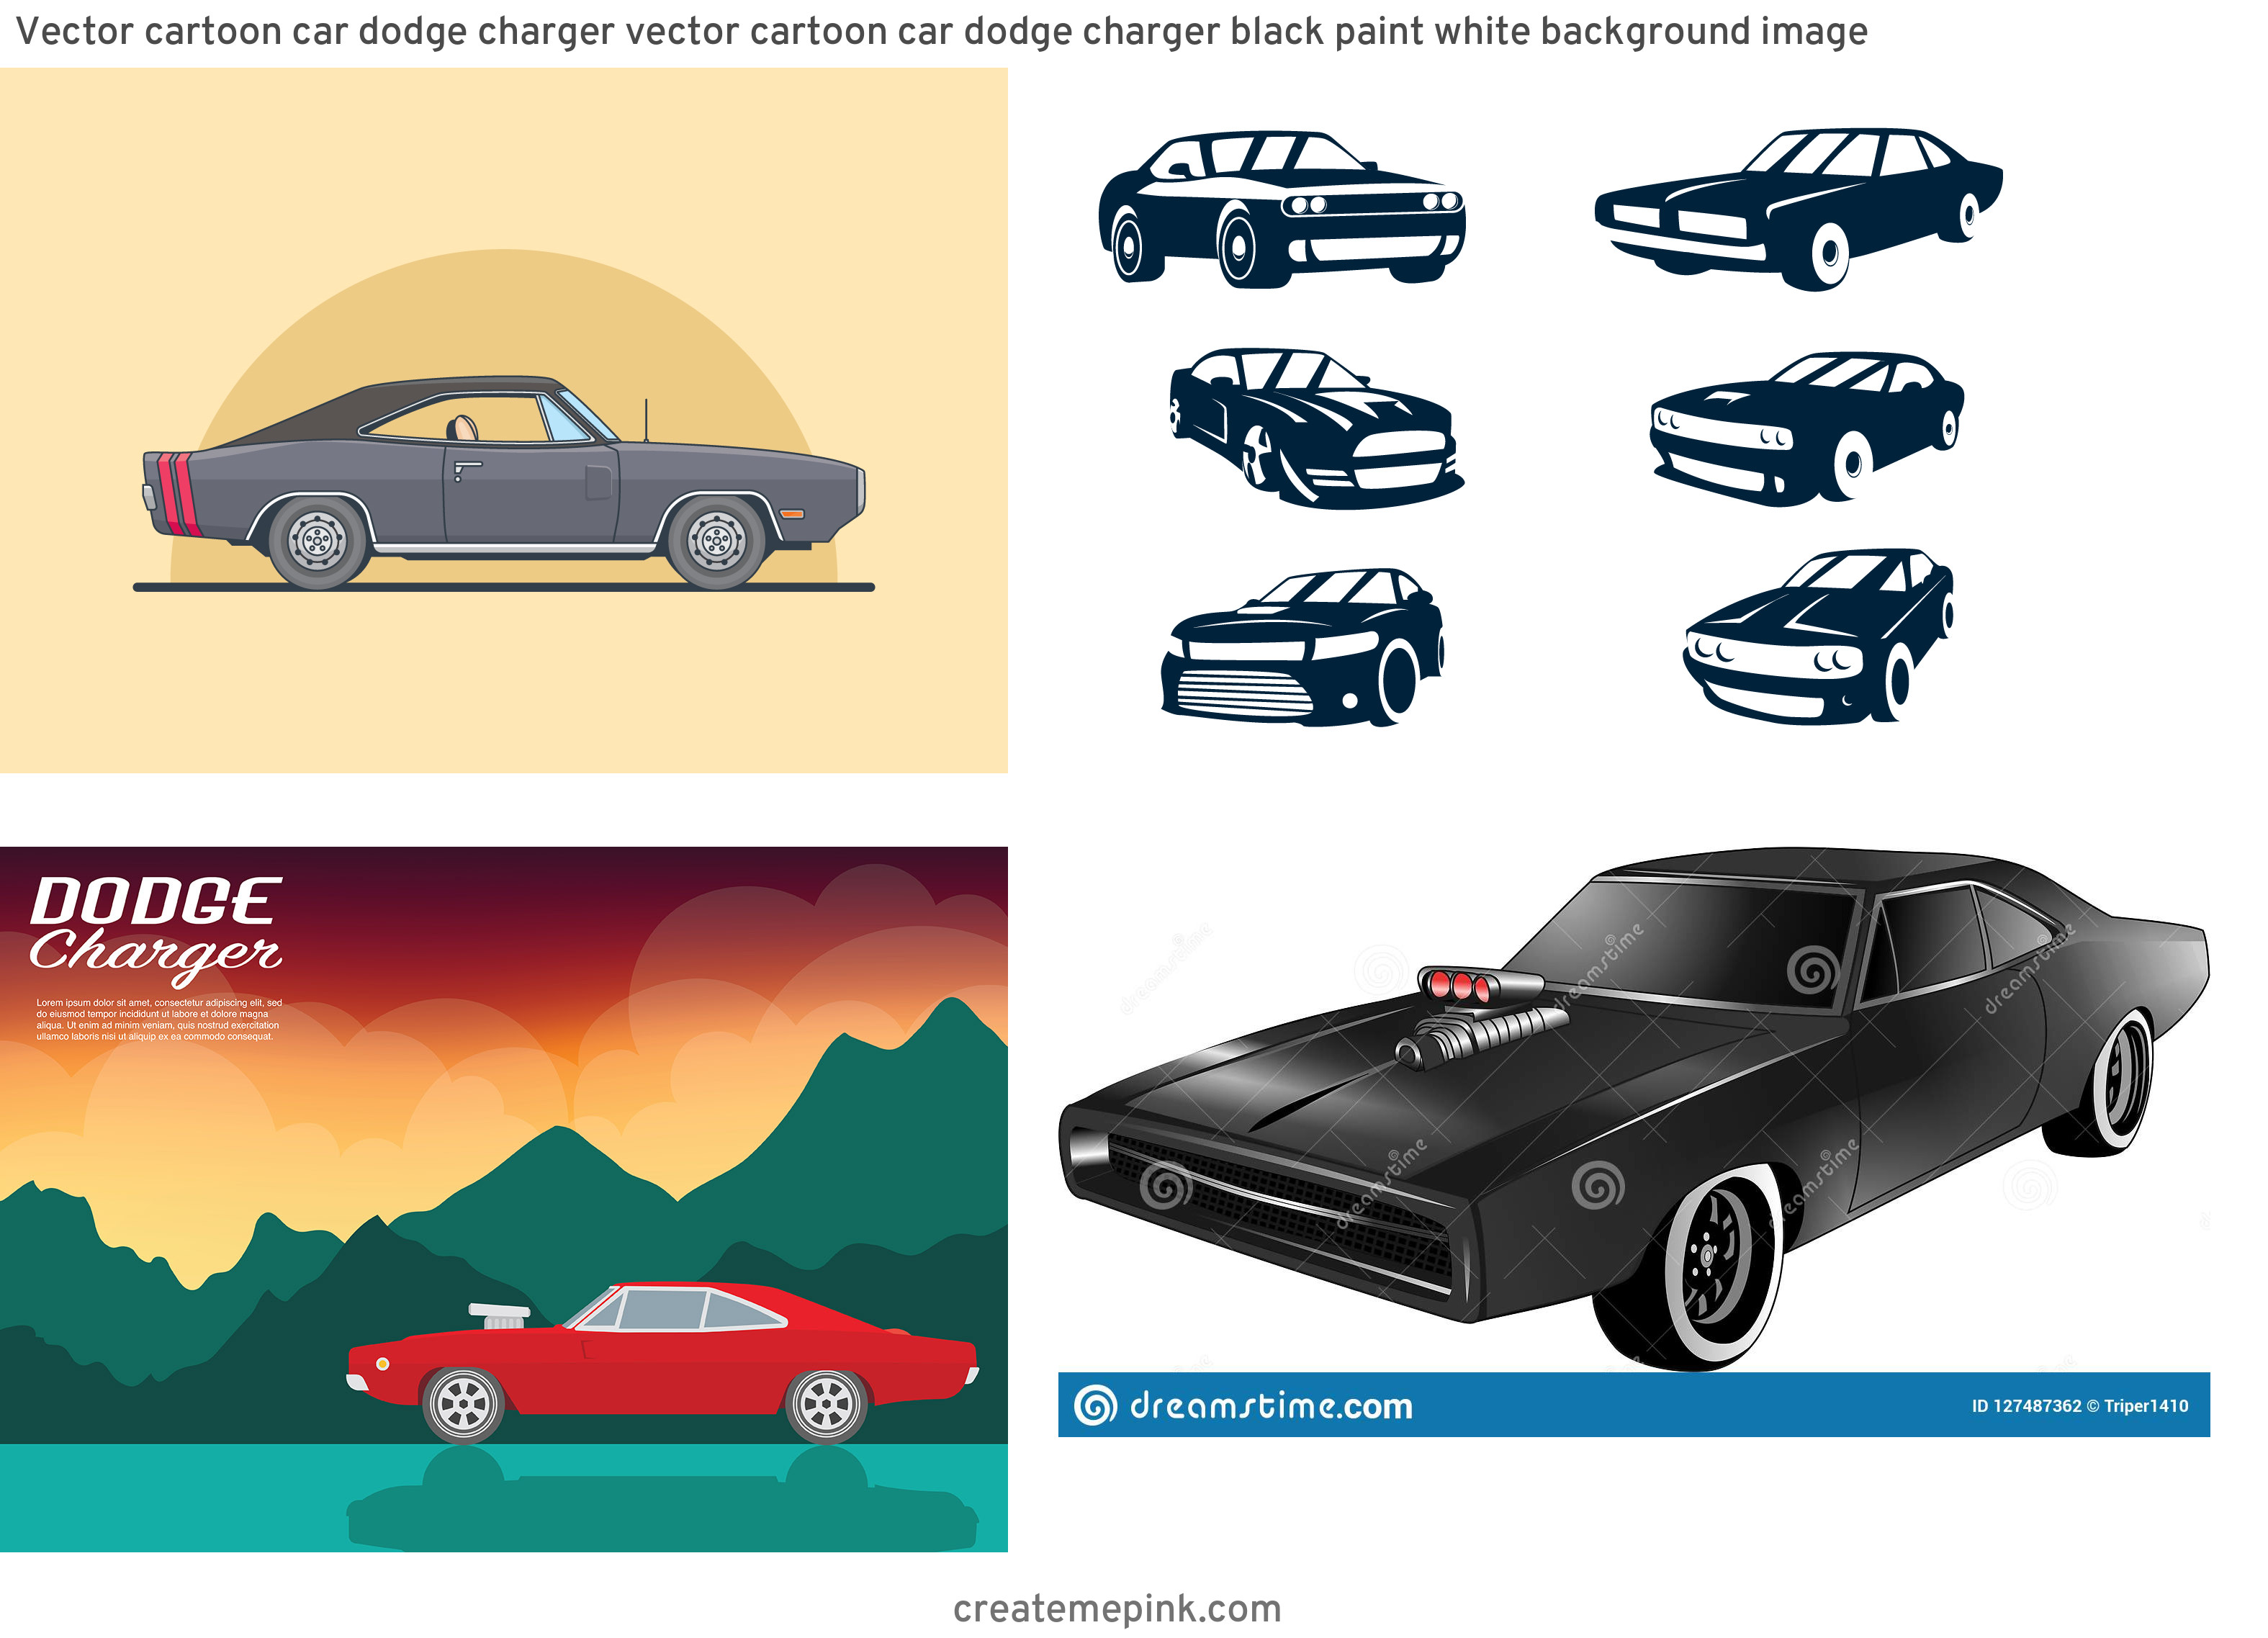 Dodge Charger Vector Graphics: Vector Cartoon Car Dodge Charger Vector Cartoon Car Dodge Charger Black Paint White Background Image